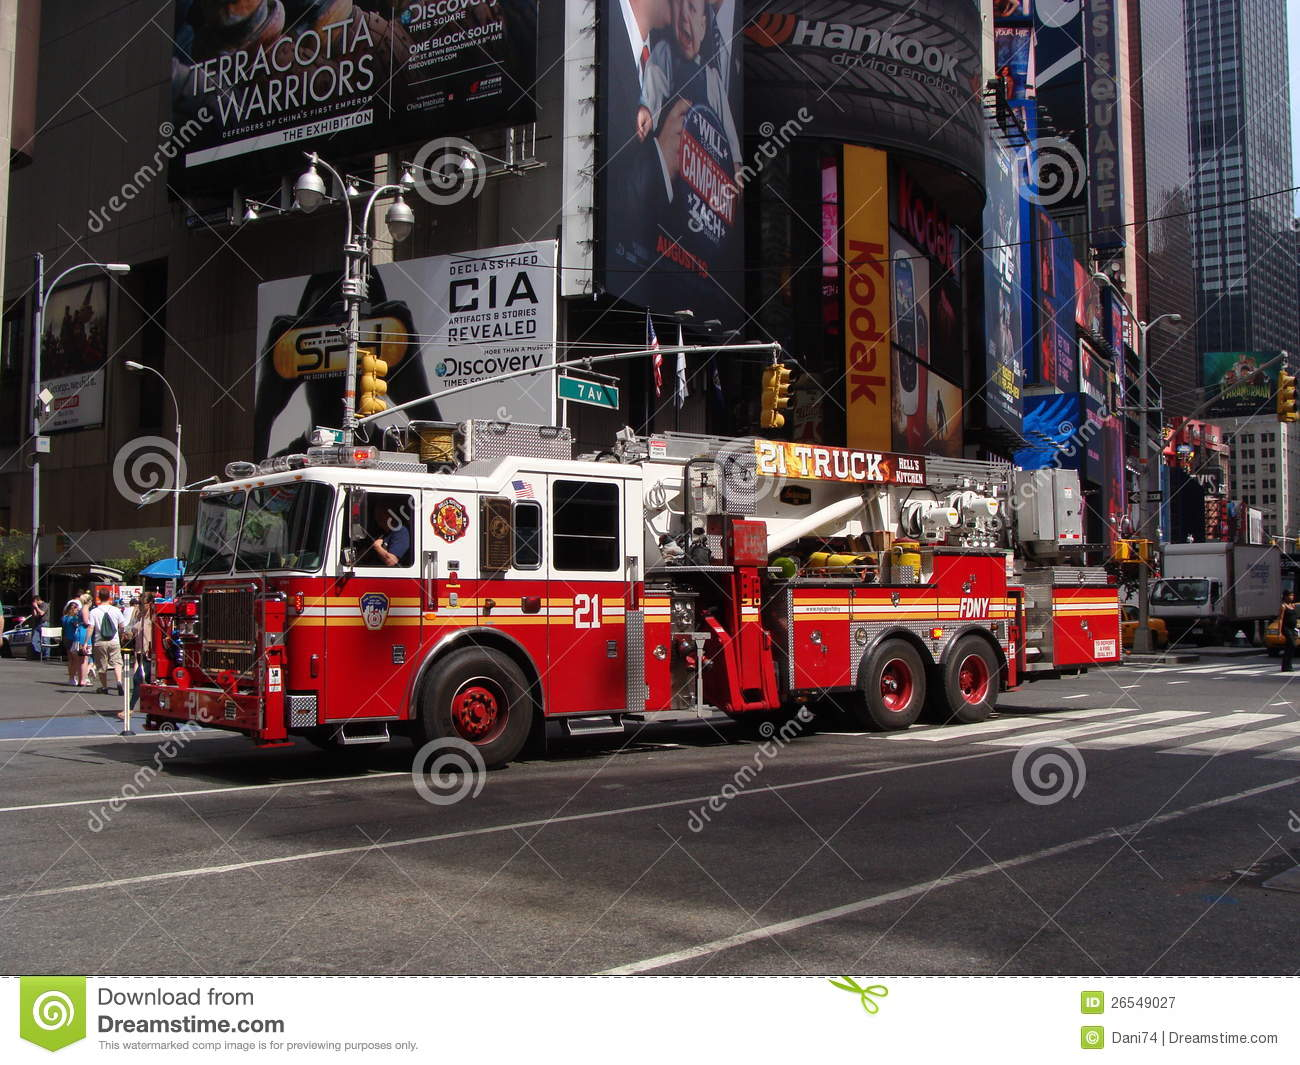 2 fire engines to house fire response - 3 2